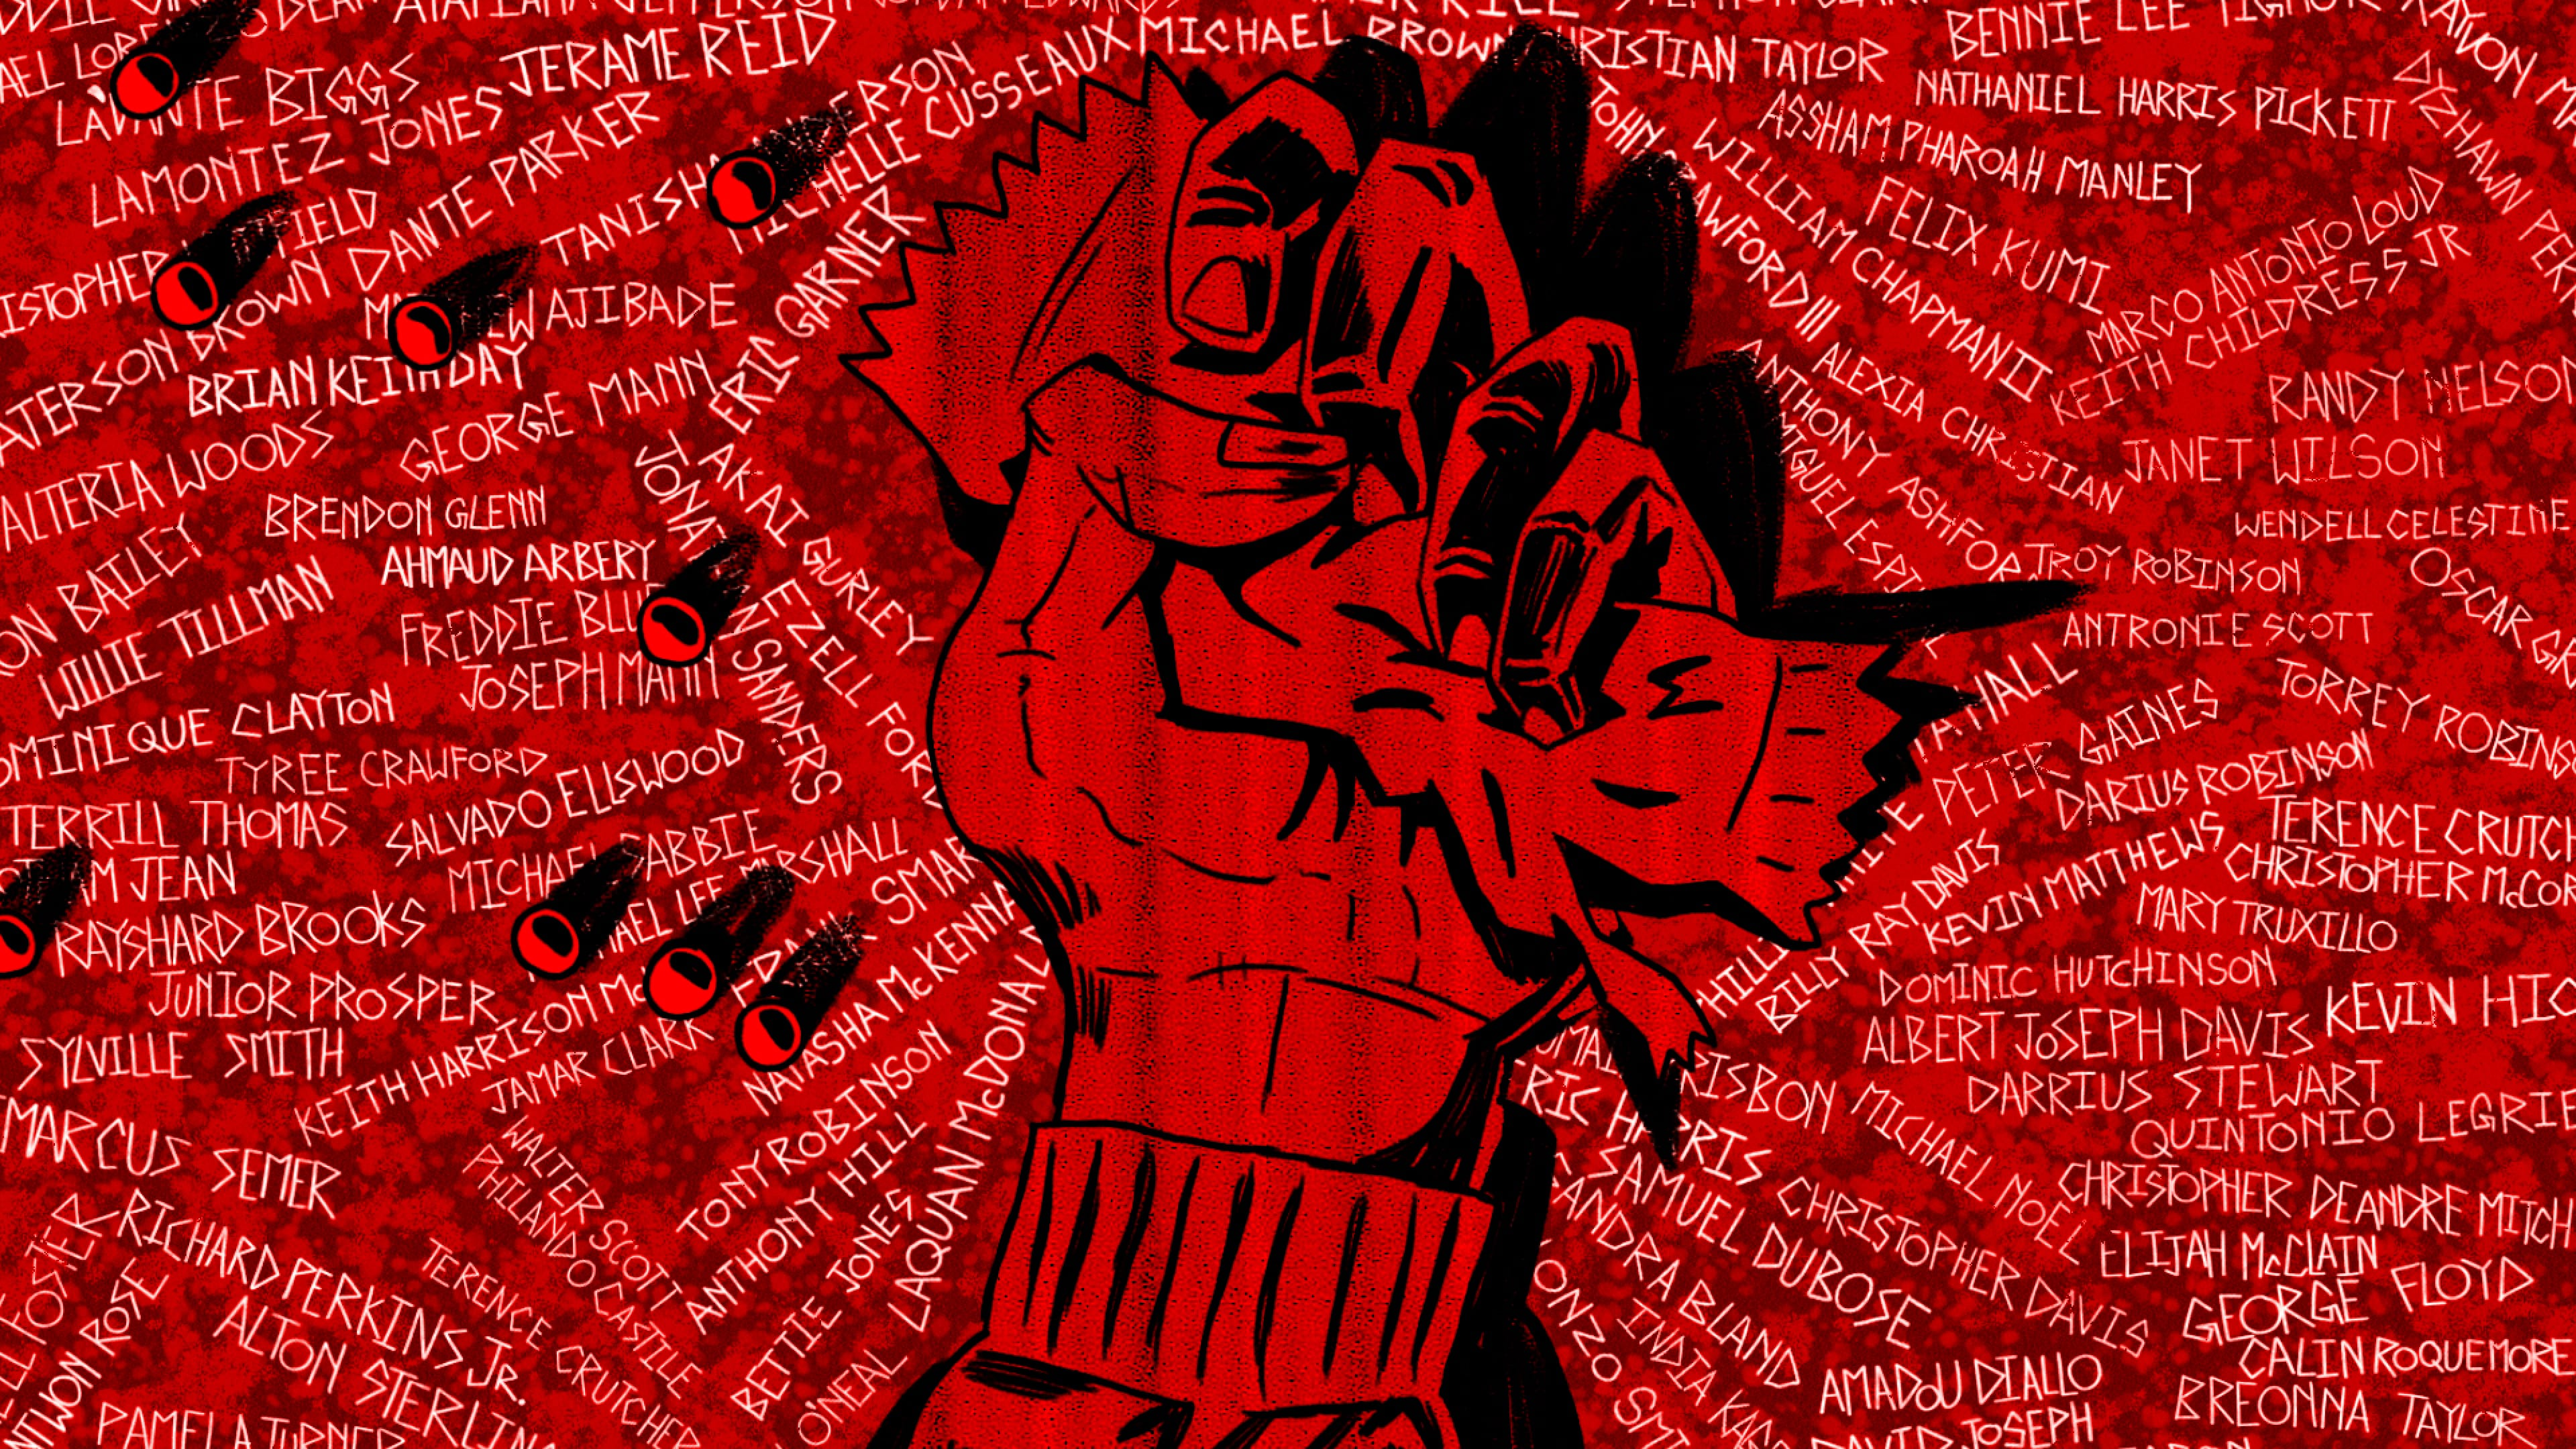 An illustration by Molevule VFX shows a hand grasping a candy wrapper. Candies spill out as the hand hits the ground. The scene is cast in red light. On the sidewalk are etched the names of individuals killed, victims of systemic racism: Eric Garner, Darius Robinson, Keith Harrison McLeod, Breonna Taylor, Willie Tillman, Akai Gurley, Michael Brown, Alteria Woods, Albert Joseph Davis, Ahmaud Arbery, and on and on and on.